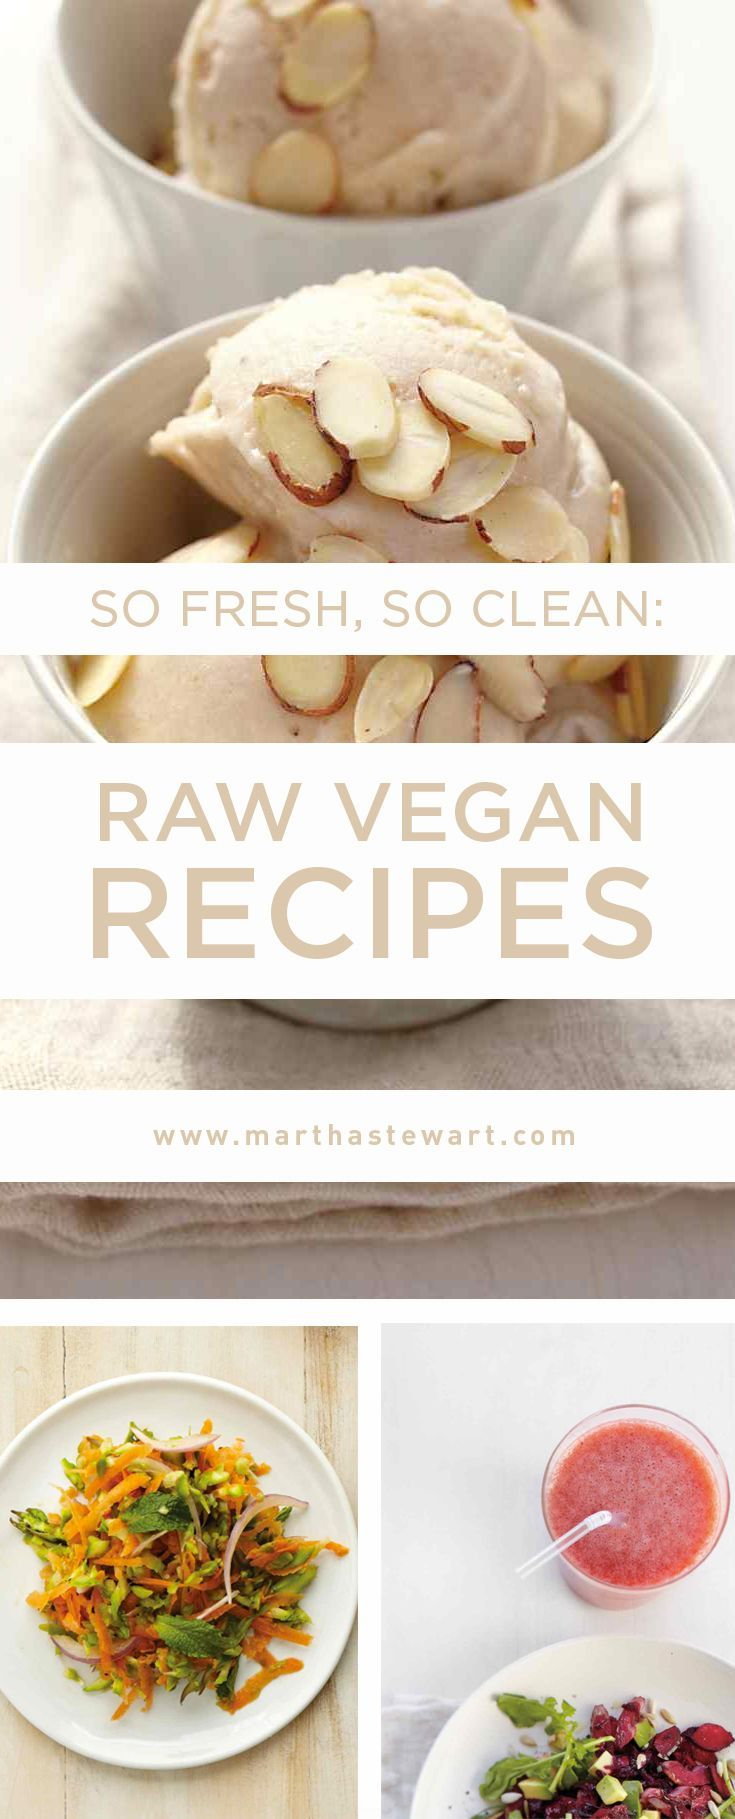 So Fresh, So Clean: Raw Vegan Recipes | Martha Stewart Living - A raw and vegan diet may not be a plan you want to follow forever, but it is a great tool if you are looking to cleanse and detoxify your body. We're here to help with our favorite raw vegan recipes. The rules: No food or ingredients can be heated above 118 degrees F and no animal product or byproduct can be used in their creation. Warning: Your interest in kombucha, meditating, and yoga may increase with this new grounding…